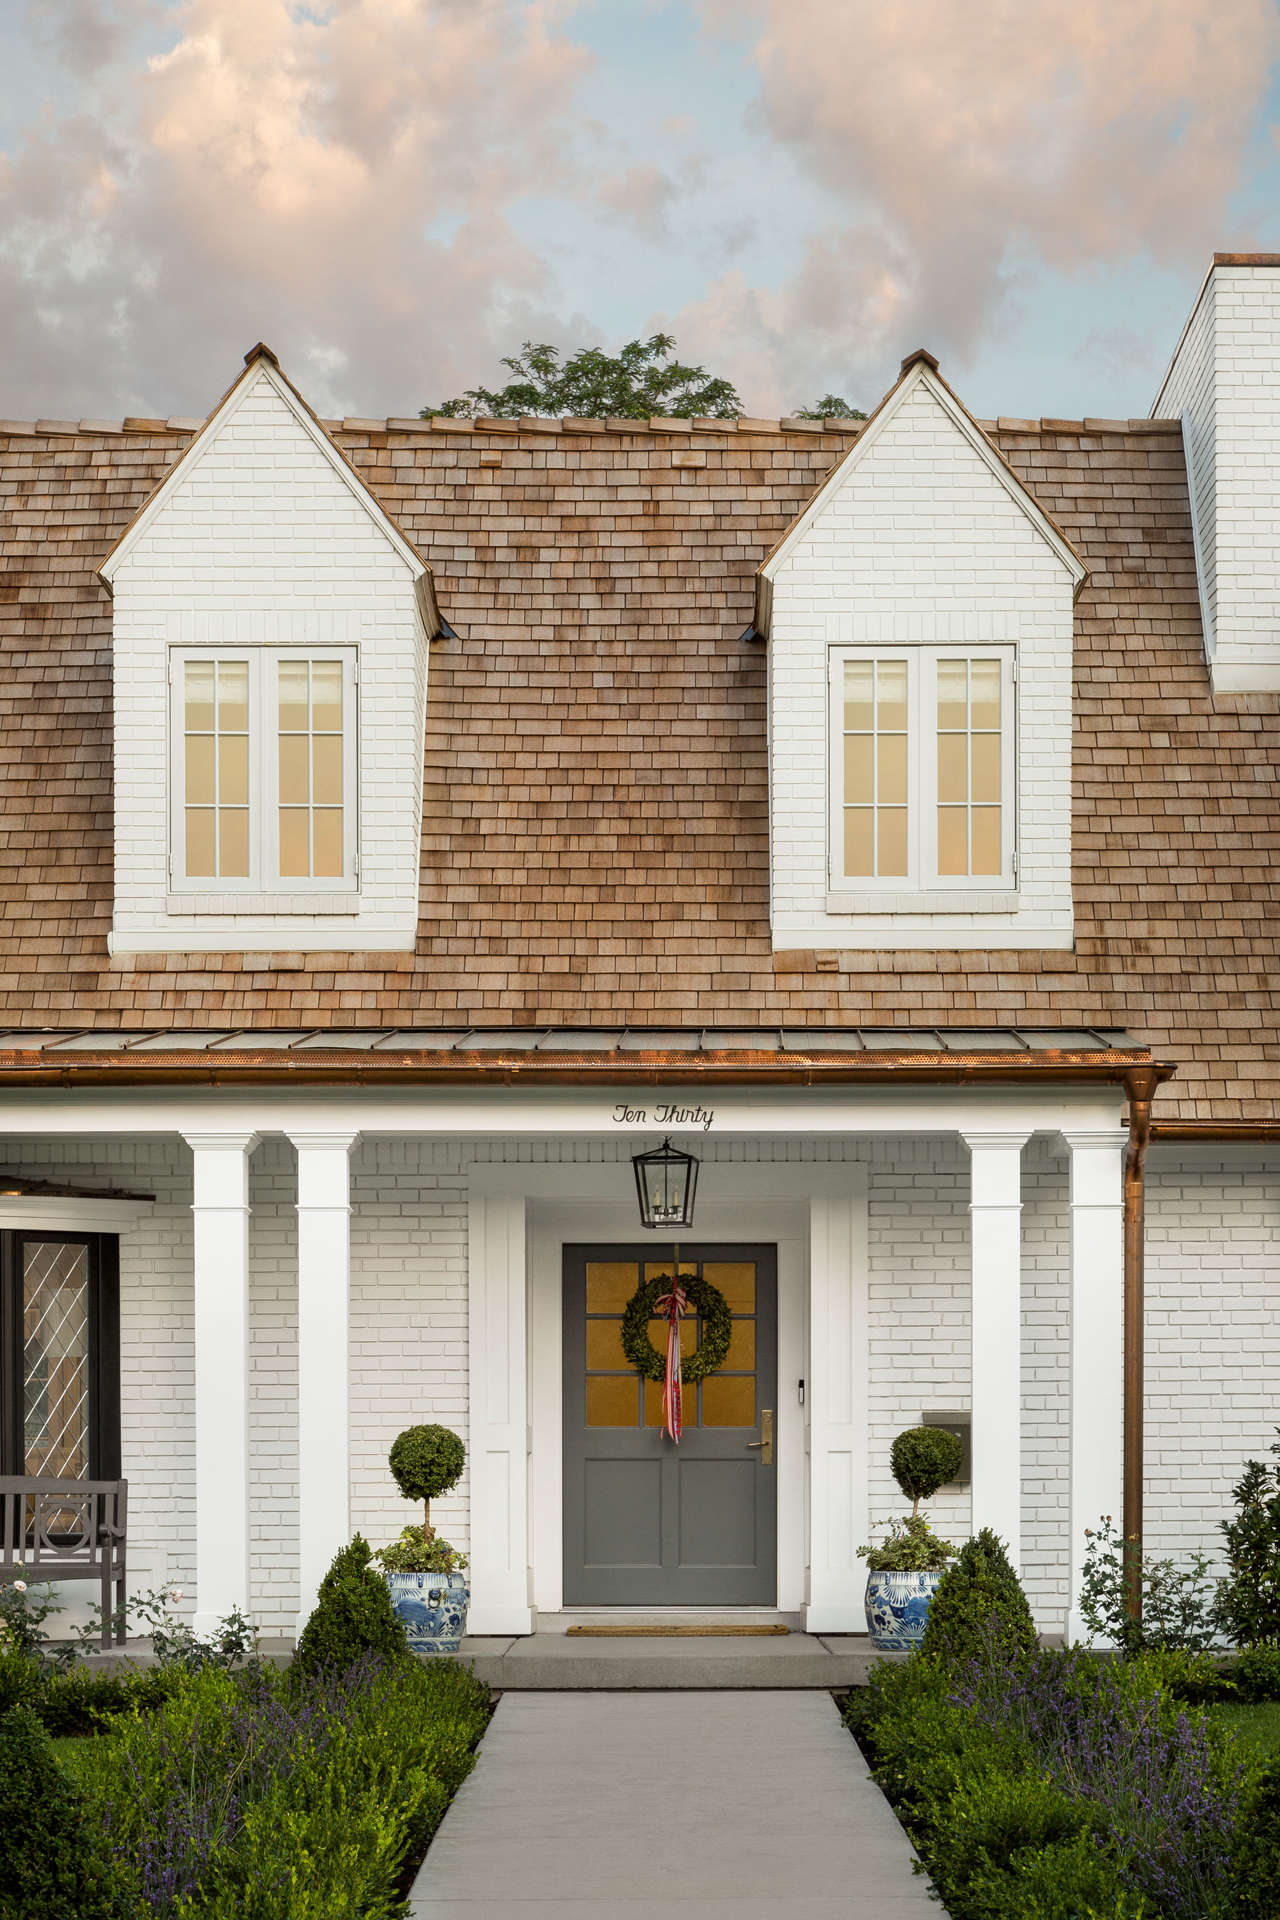 Classic Tudor style home exterior with white brick. The Fox Group. Come explore these timeless design ideas...hello lovely indeed. #houseexterior #tudor #classic